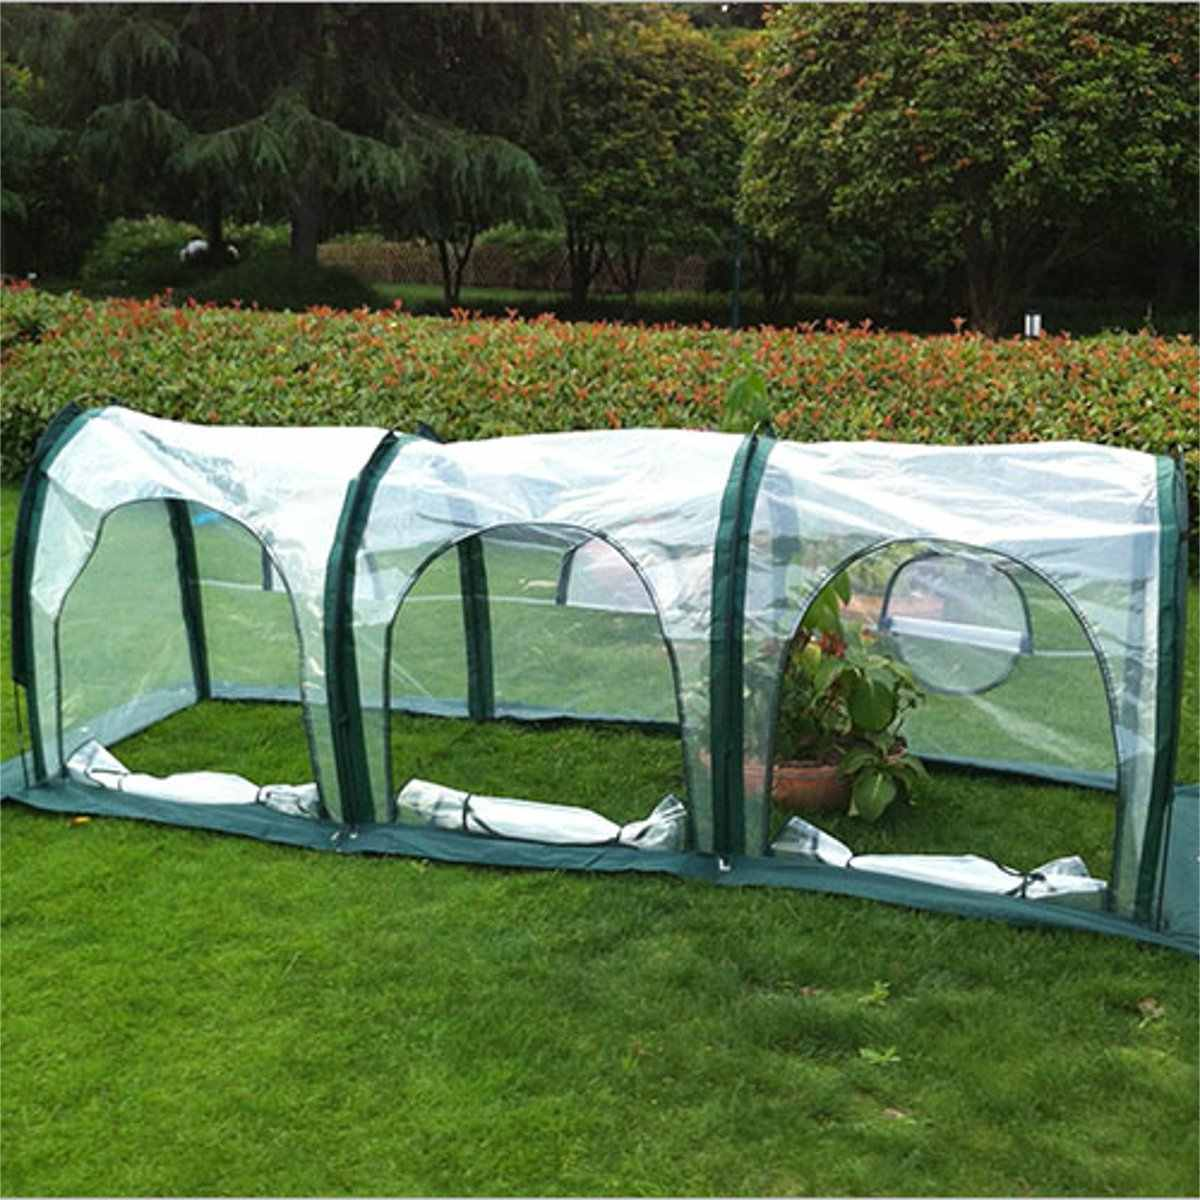 300x100x100cm Mini Greenhouse Home Outdoor Flower Plant Gardening Winter Shelter Waterproof Anti-UV Tunnel Vegetables Greenhouse